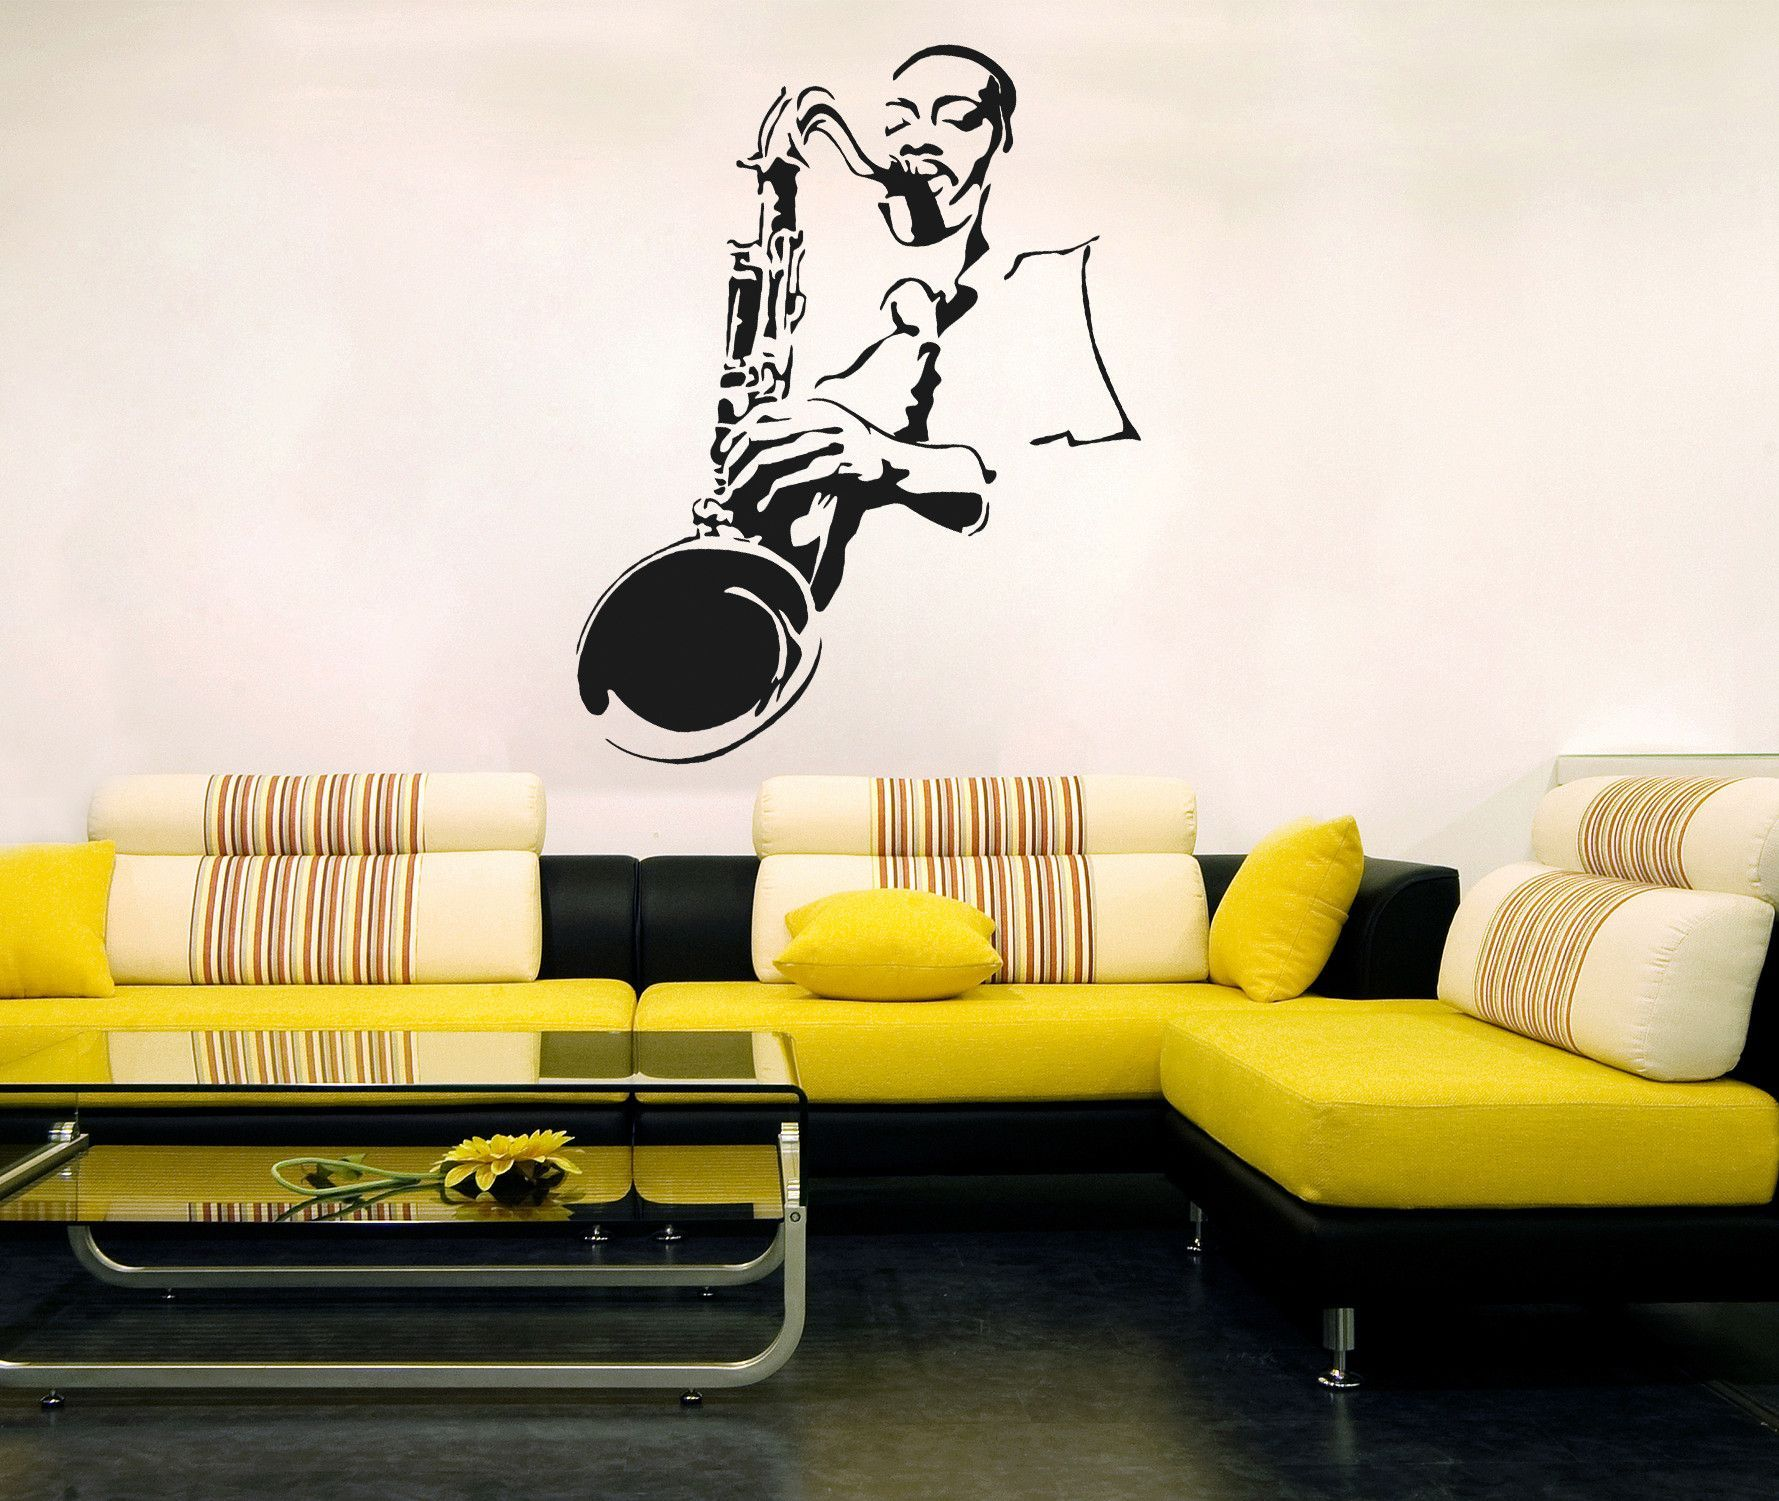 ik206 Wall Decal Sticker Decor jazz musician sax saxophone music ...